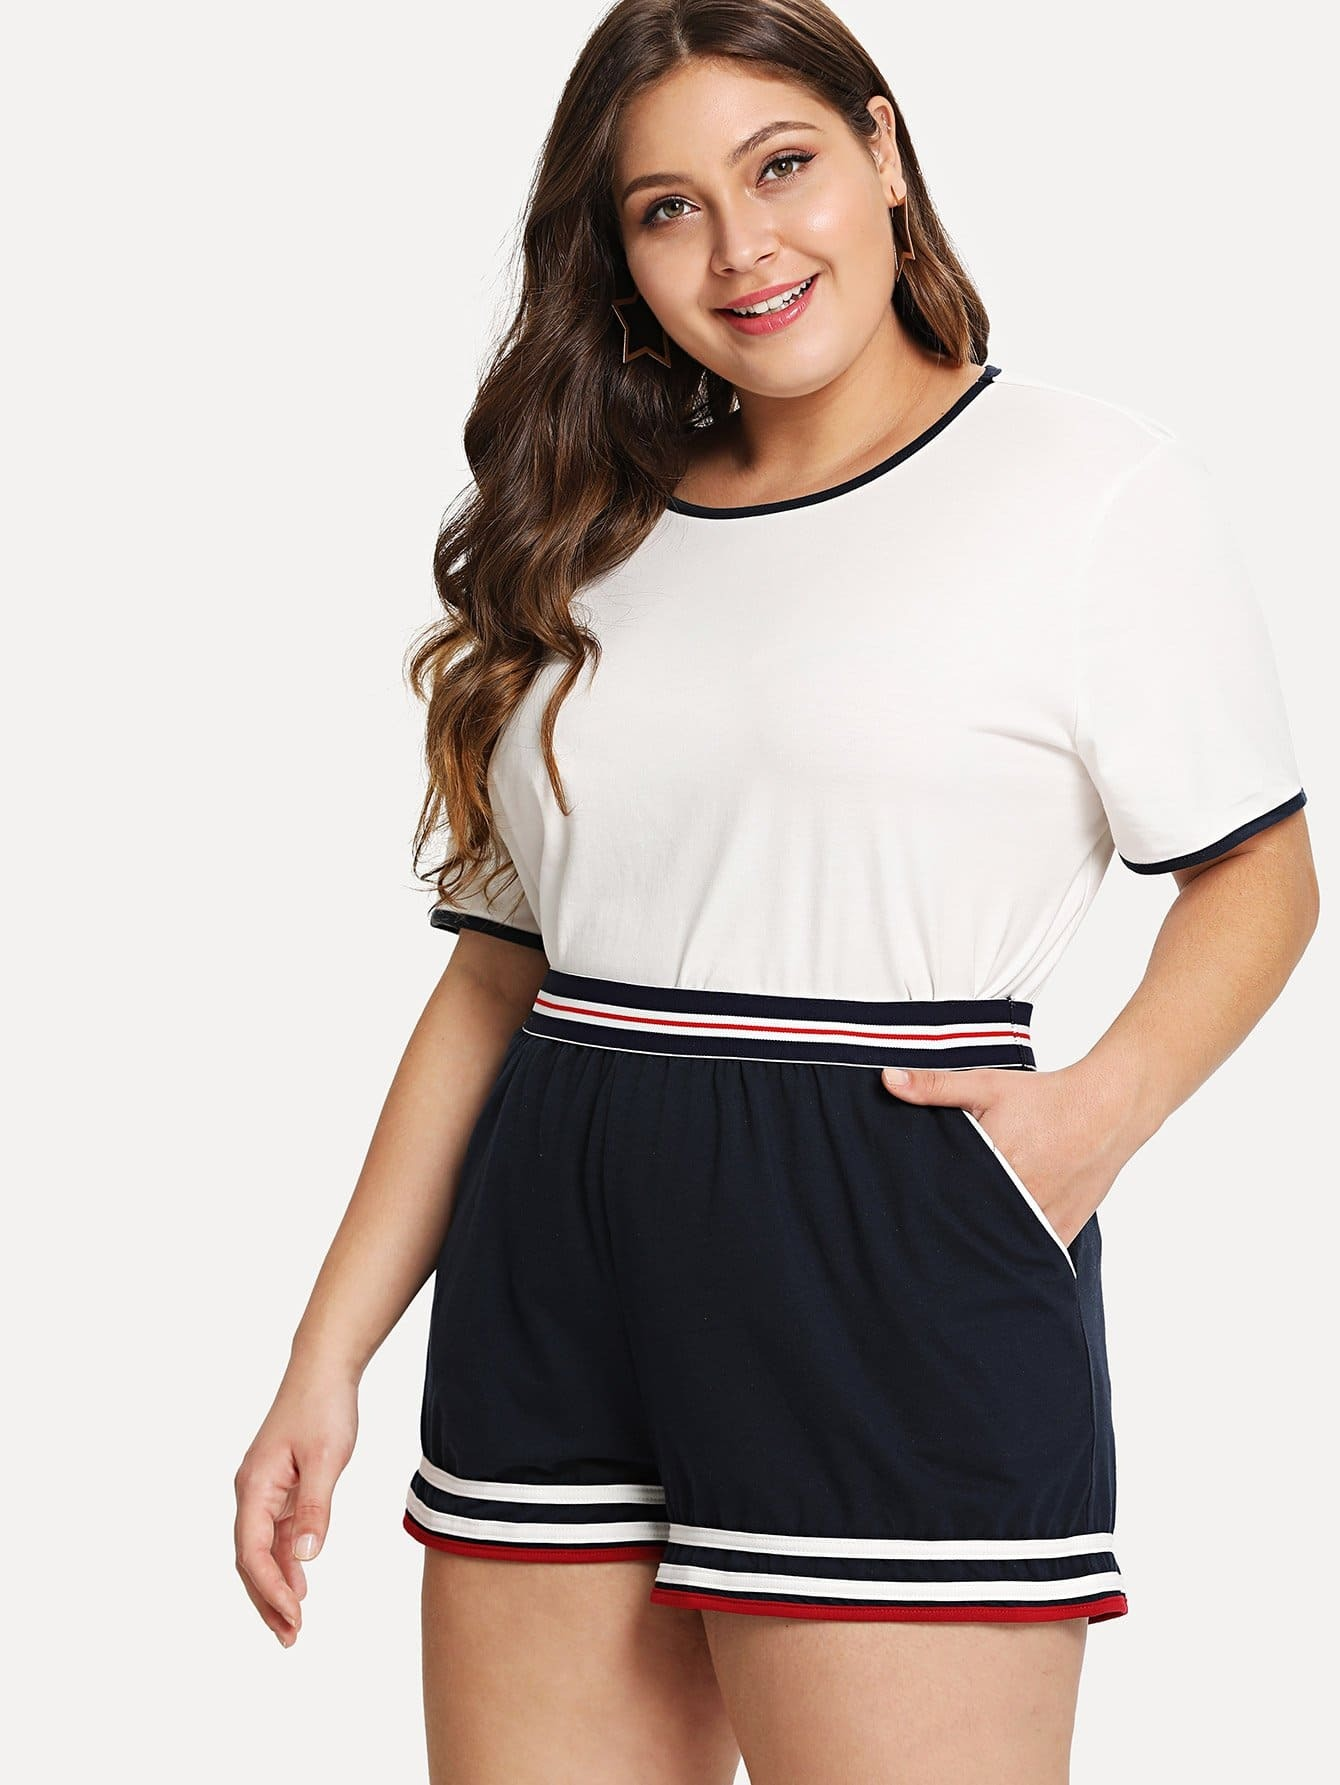 Ringer Tee With Striped Trim Shorts contrast trim ribbed tee with striped shorts